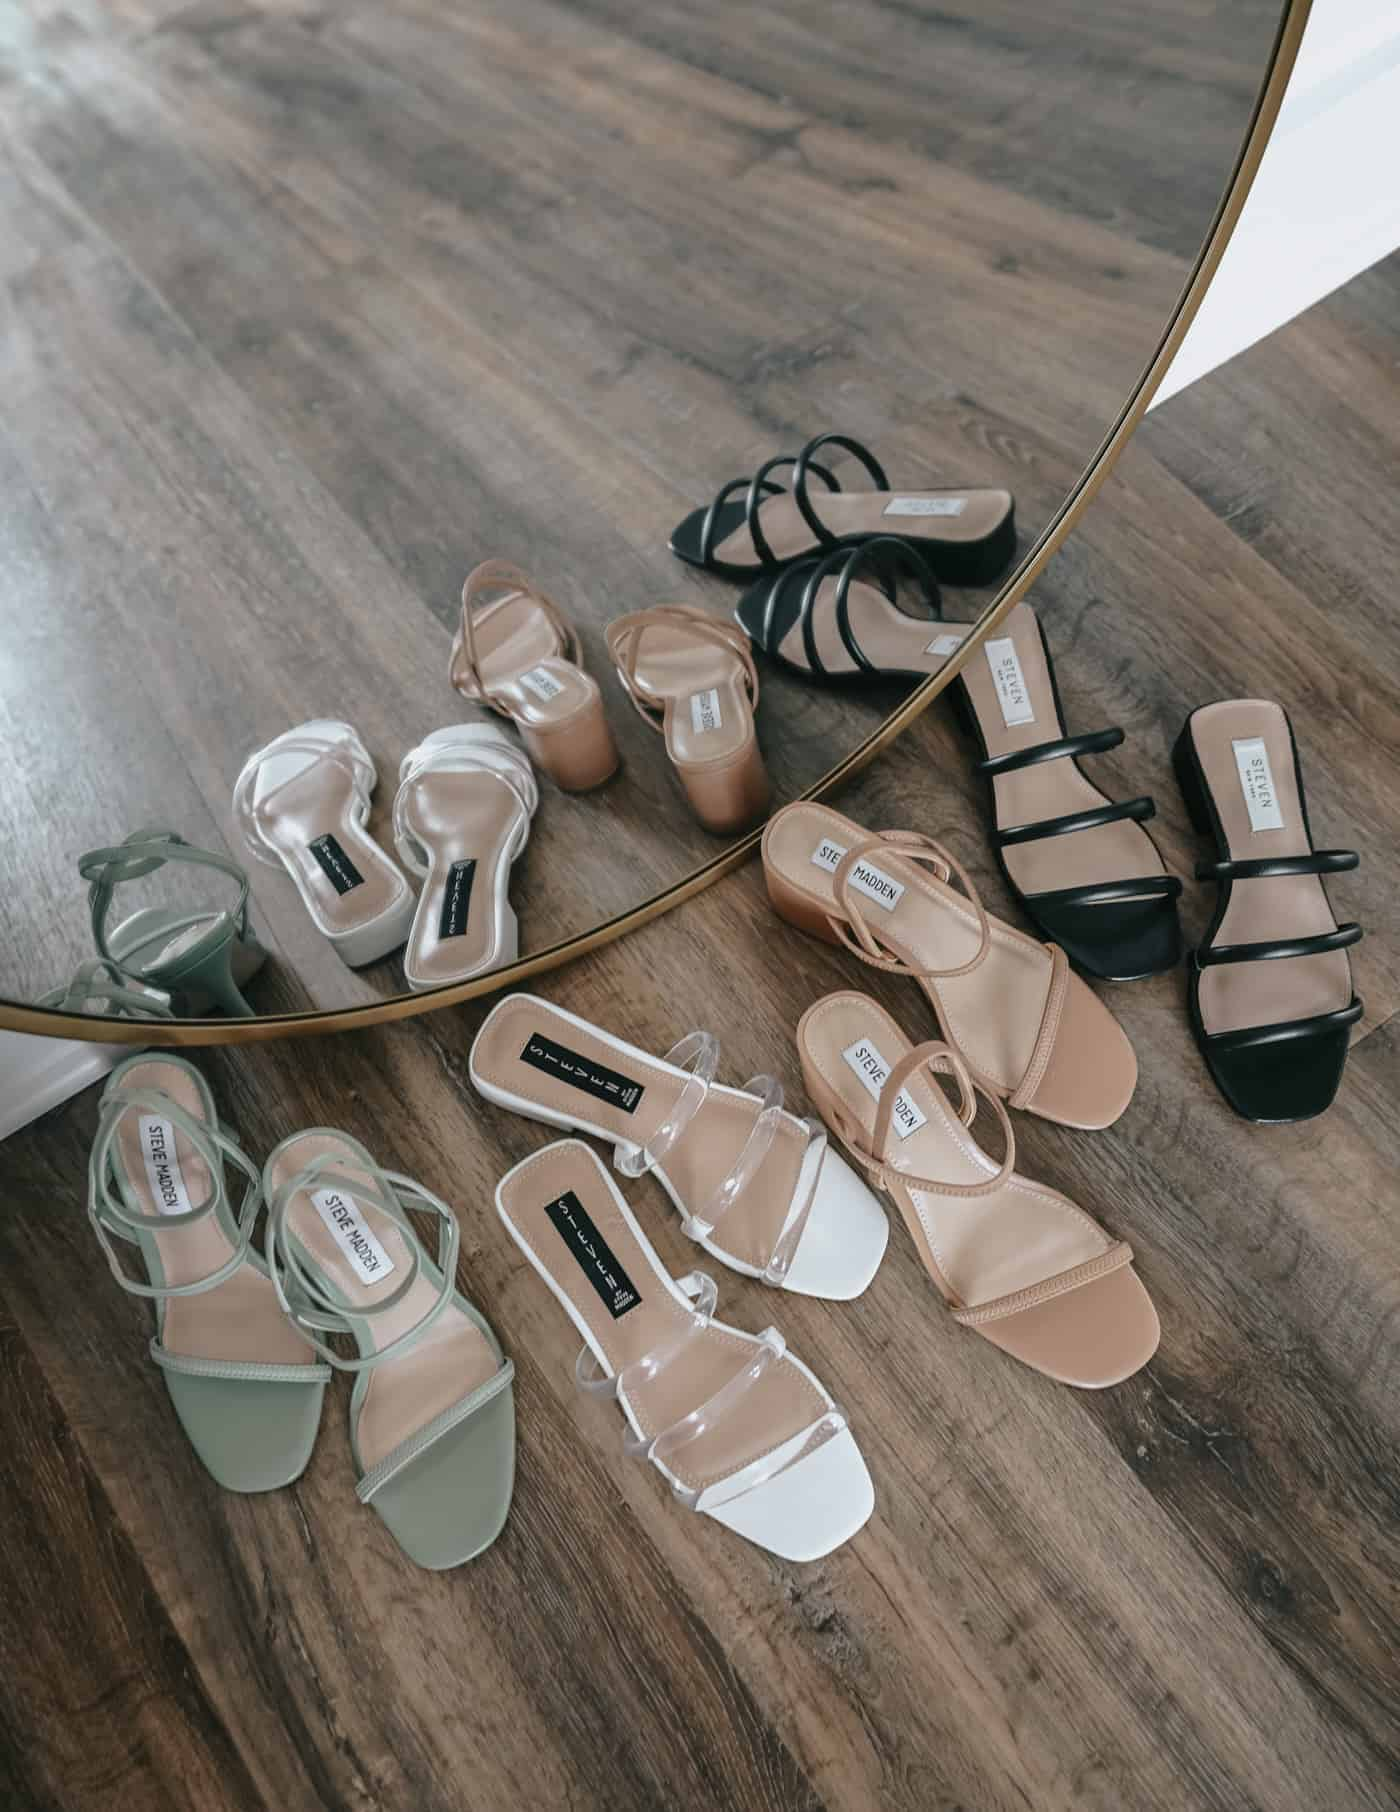 With warmer temperatures just aroud the corner, today, we are sharing more than 80 of our Spring shoe favorites under $50, $100 and $200.